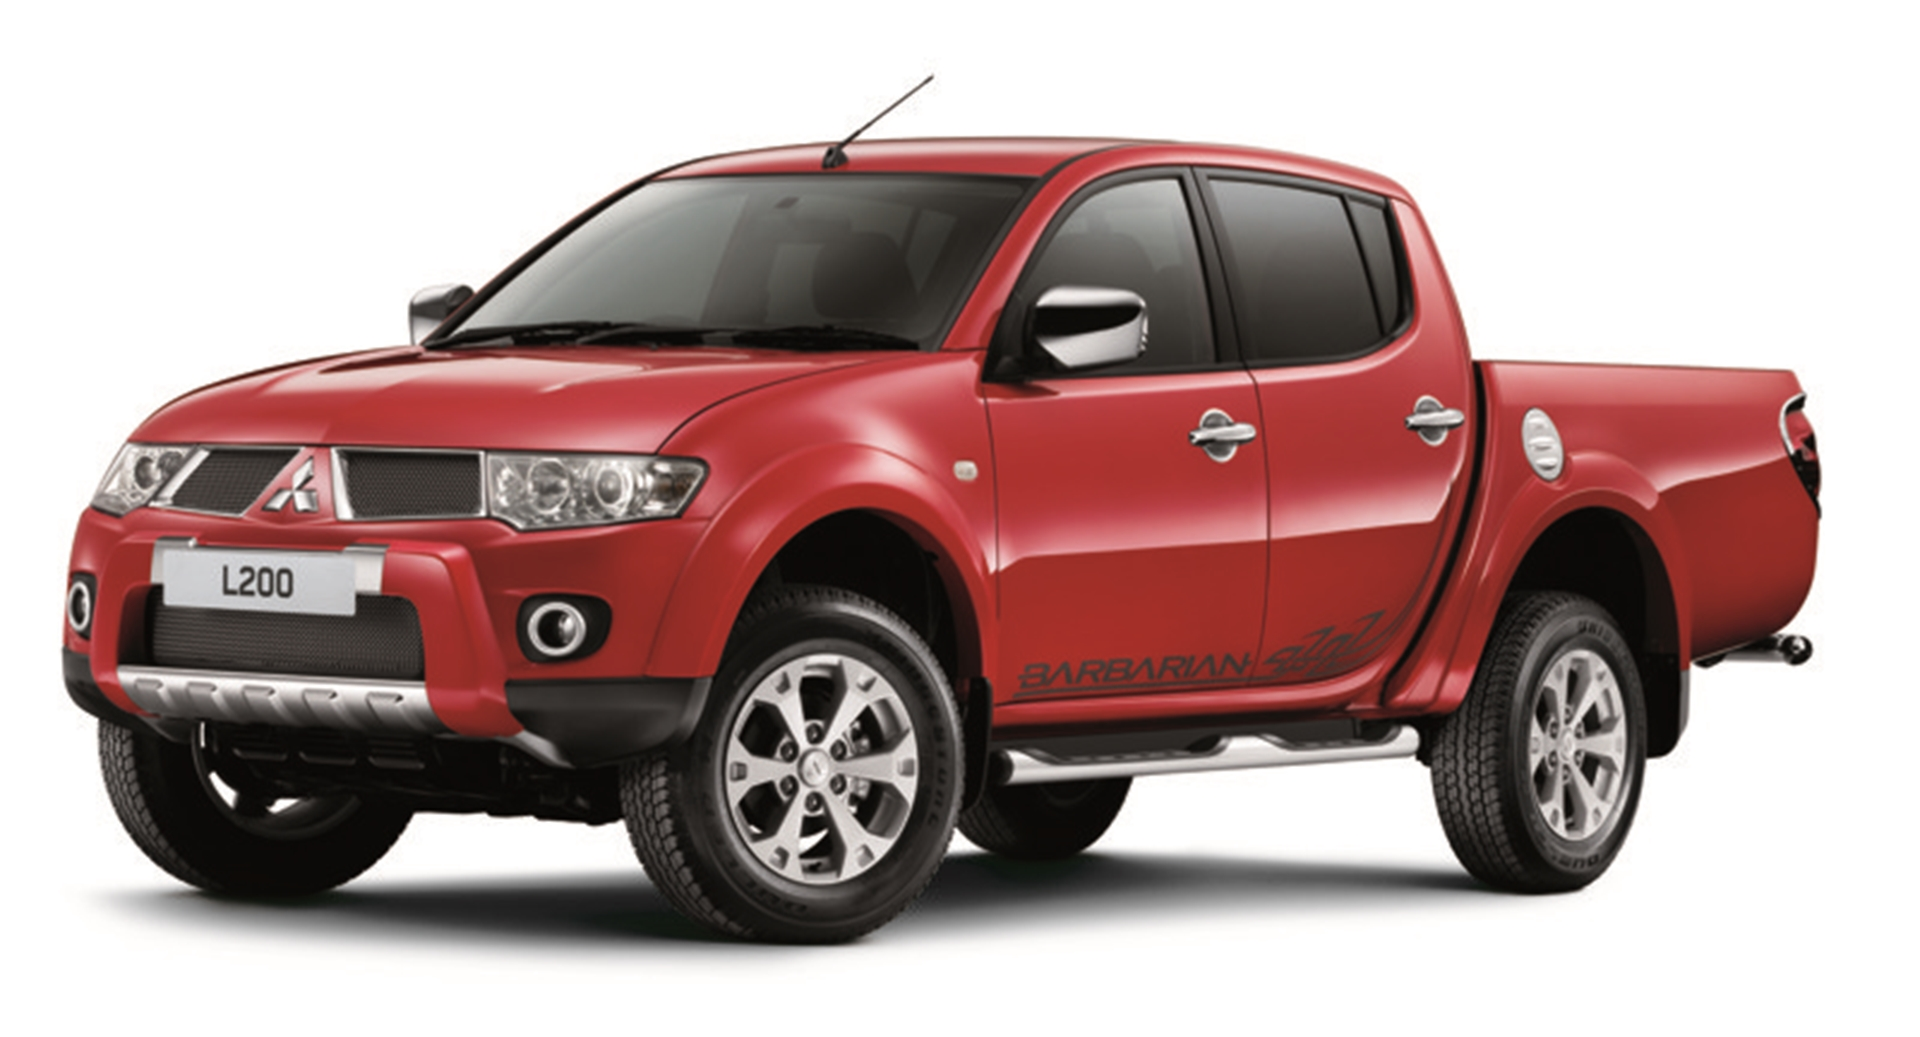 The Mitsubishi L200 Barbarian